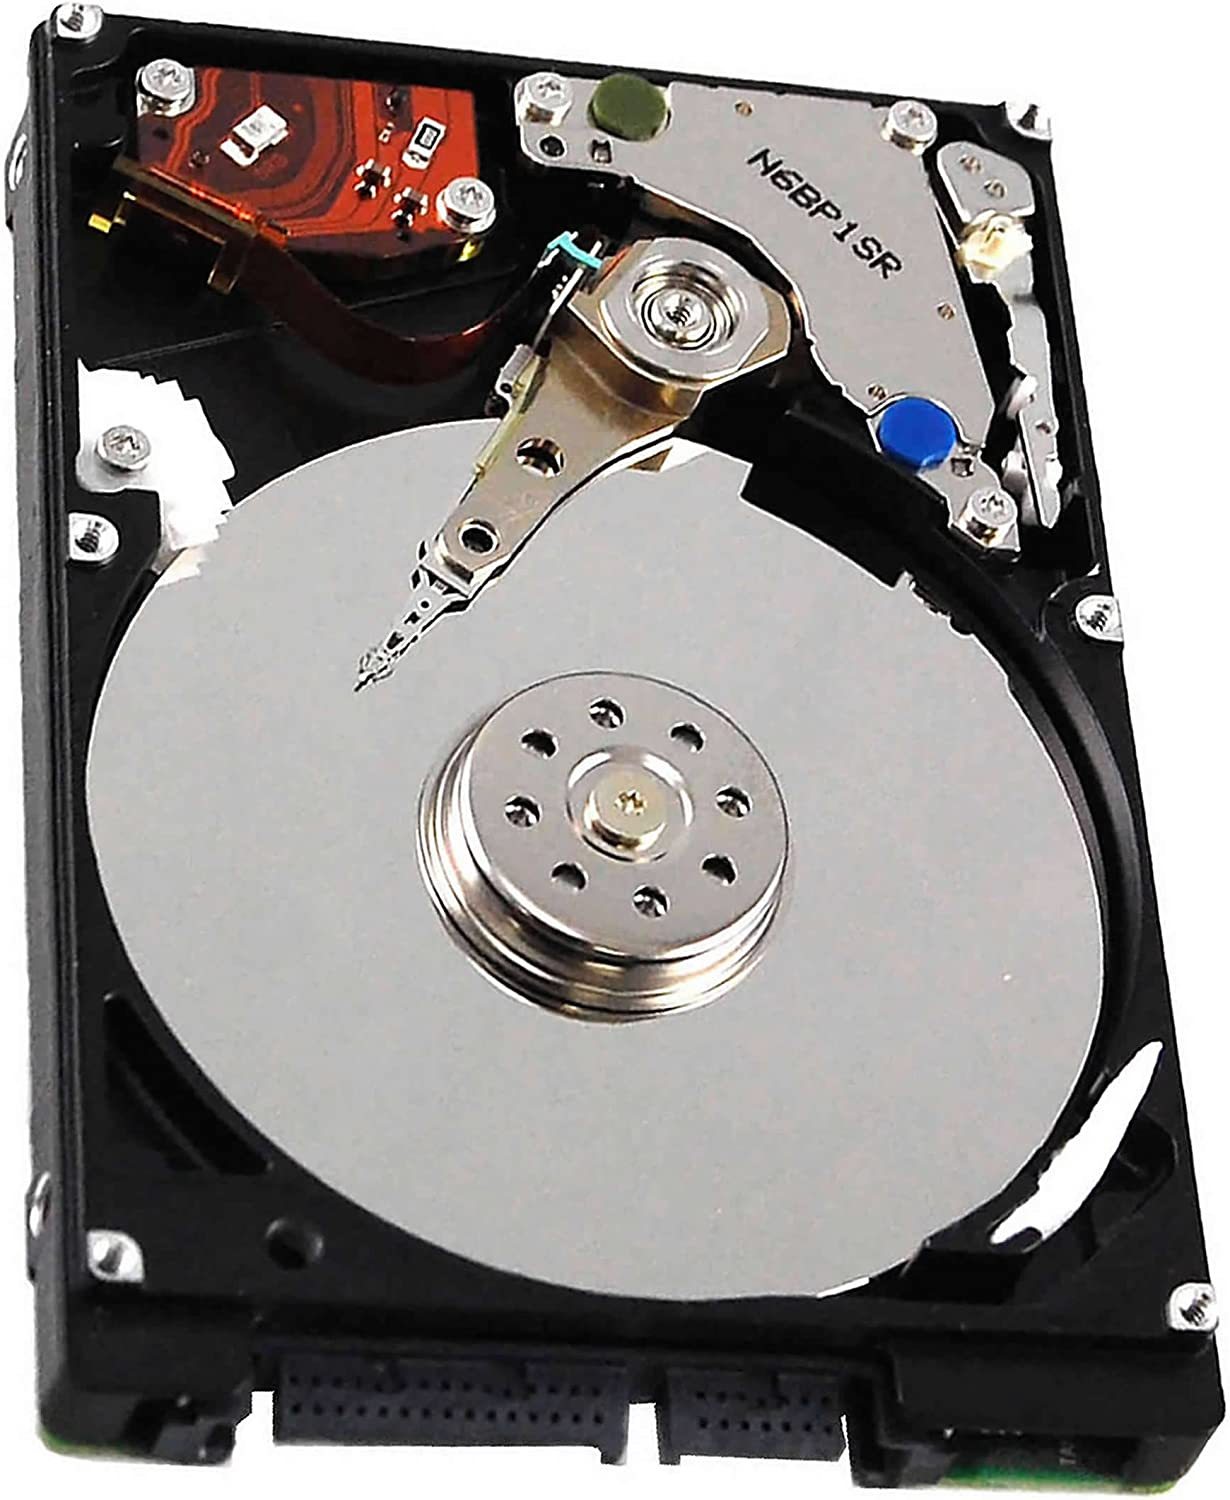 "Lot of 5 500GB SATA 2.5/"" 5400 or 7200RPM Laptop Hard Drive *Discounted Price!"